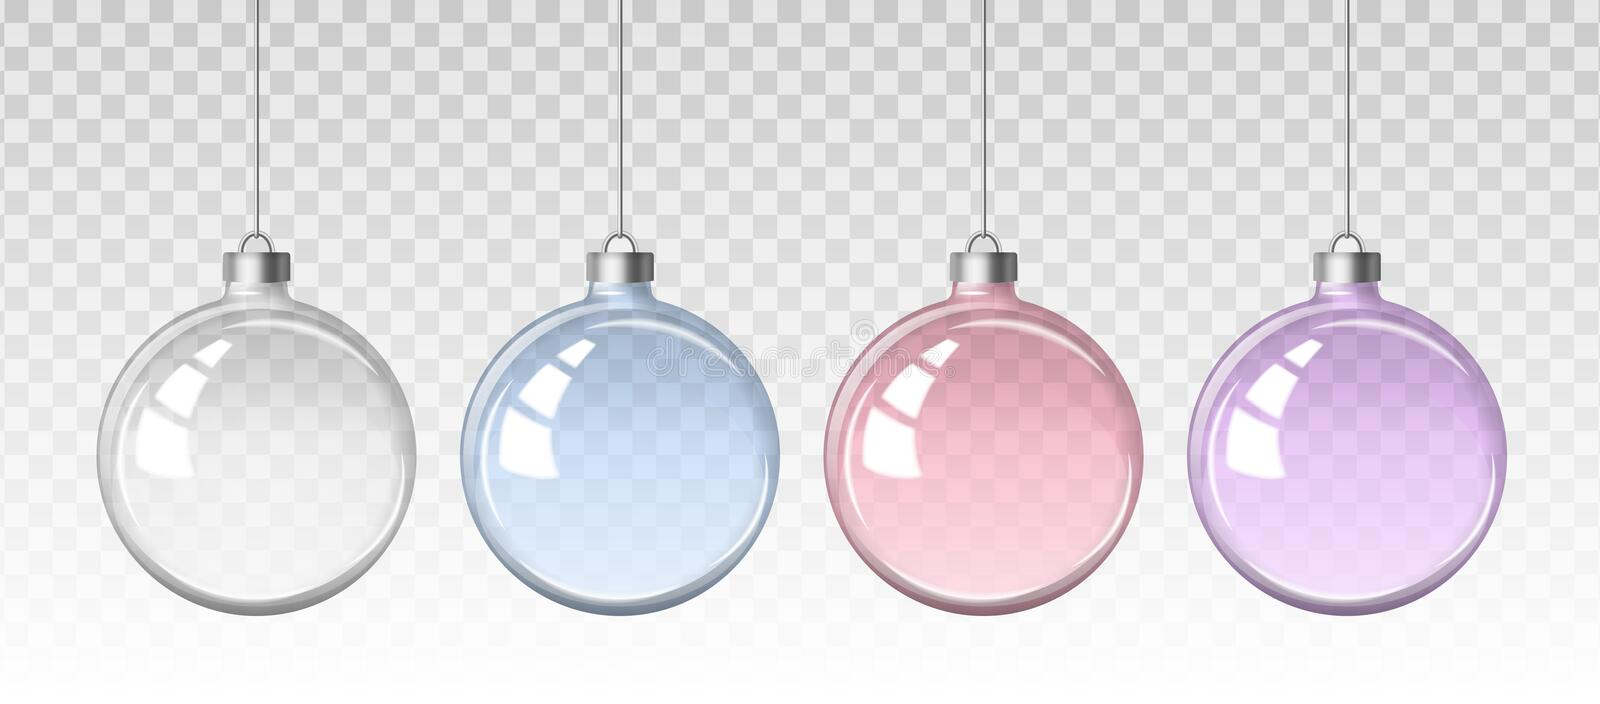 Vector realistic set of images of a glass transparent Christmas balls stock illustration